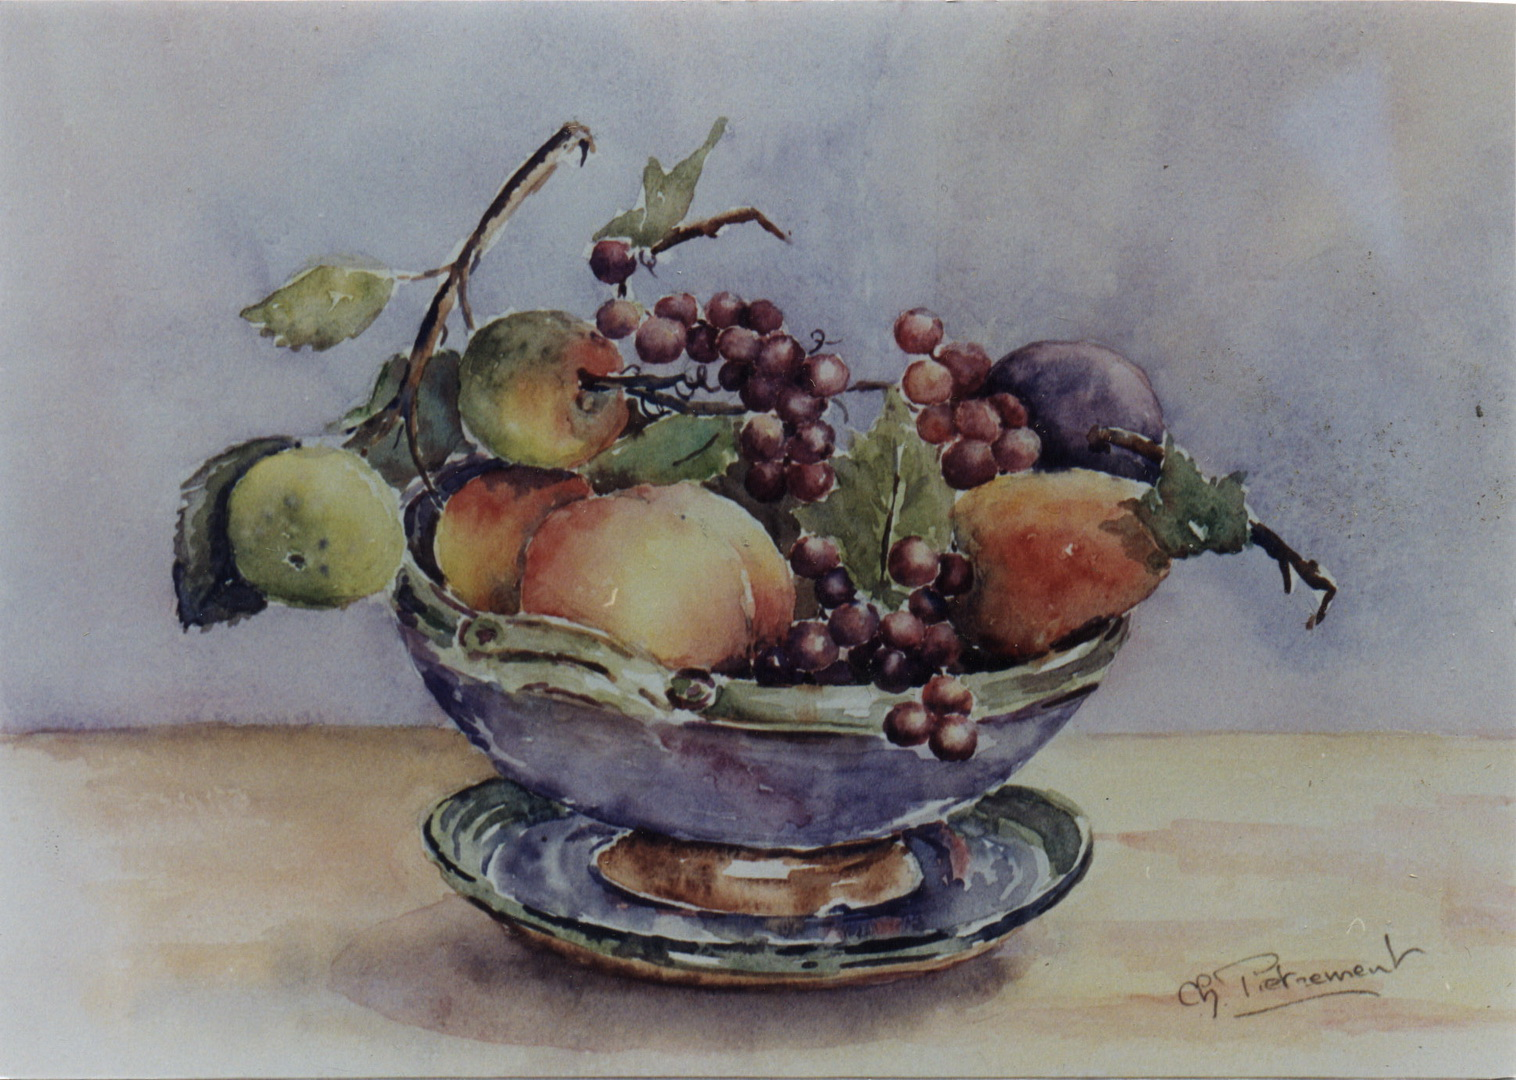 images/compositions/Compotier fruits_redimensionner.jpg